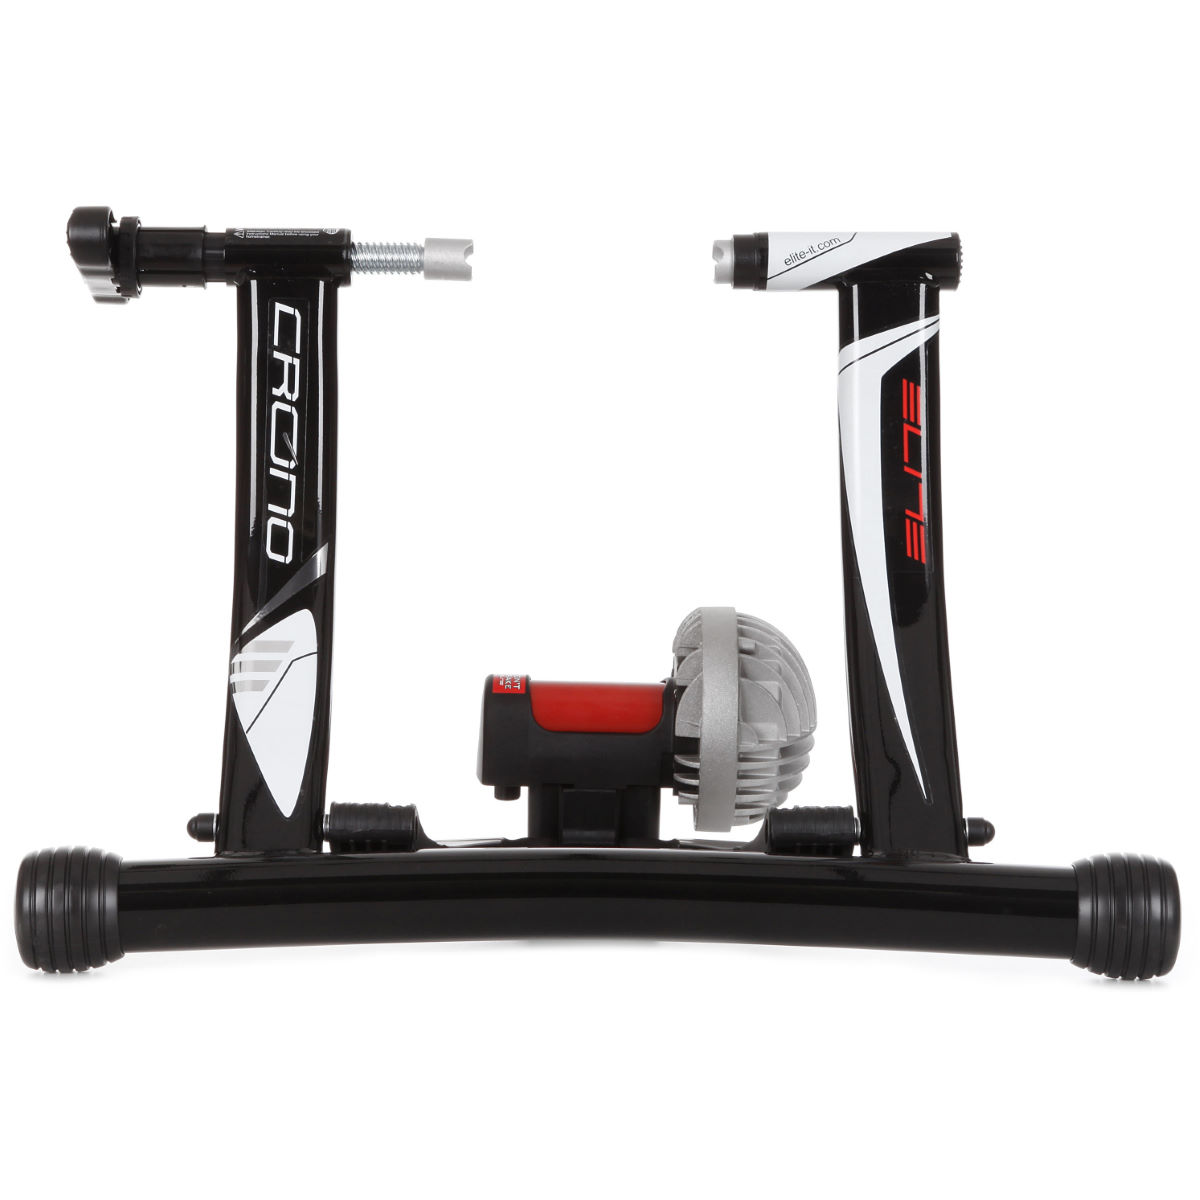 Home trainer Elite Crono Fluid ElastoGel - Taille unique Black/Red/Silver Home Trainer et rouleaux